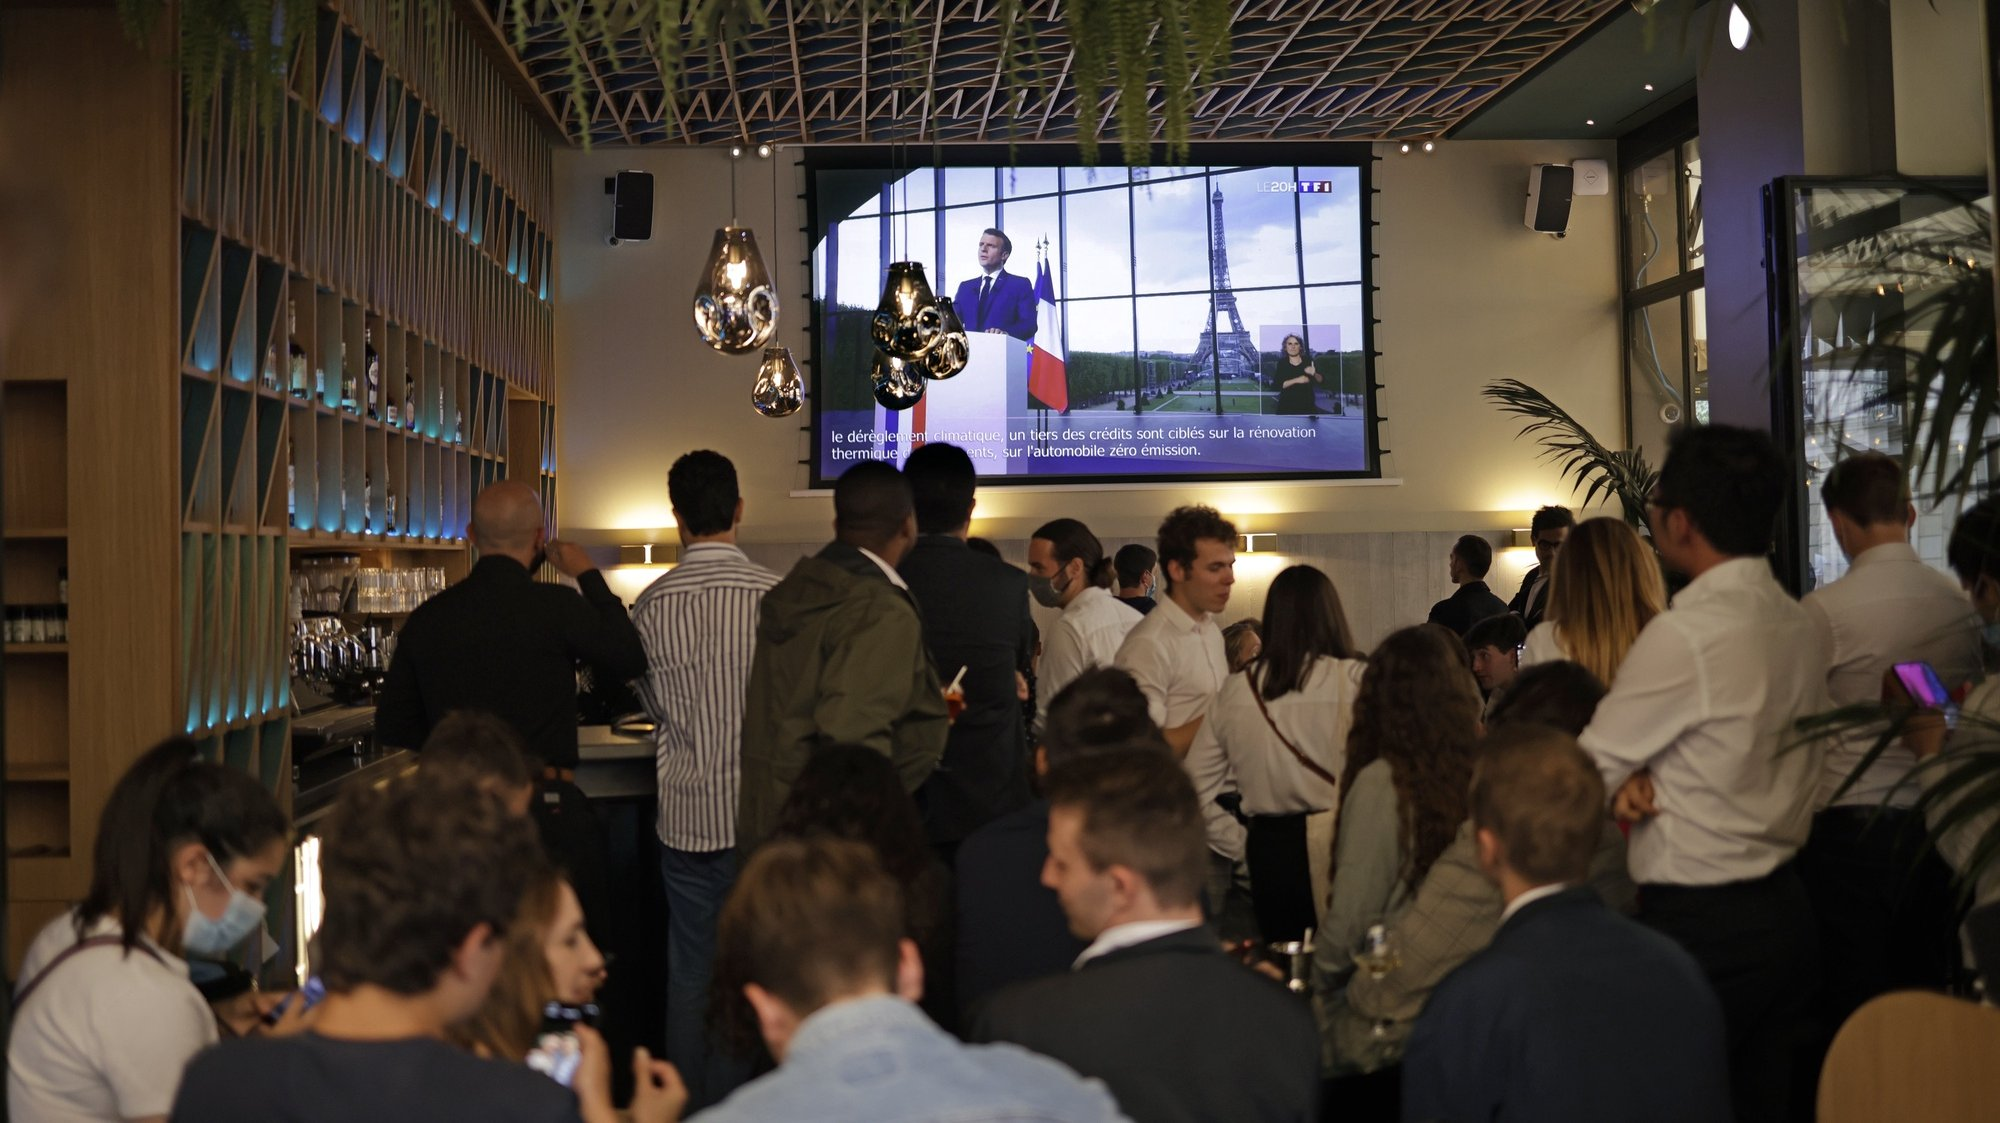 epa09340935 Bar customers watch French President Emmanuel Macron making a televised address to the nation to announce enhanced measures to fight the spread of Covid19 coronavirus, as France faces a possible resurgence of the pandemic, in Paris, France, 12 July 2021.  EPA/YOAN VALAT